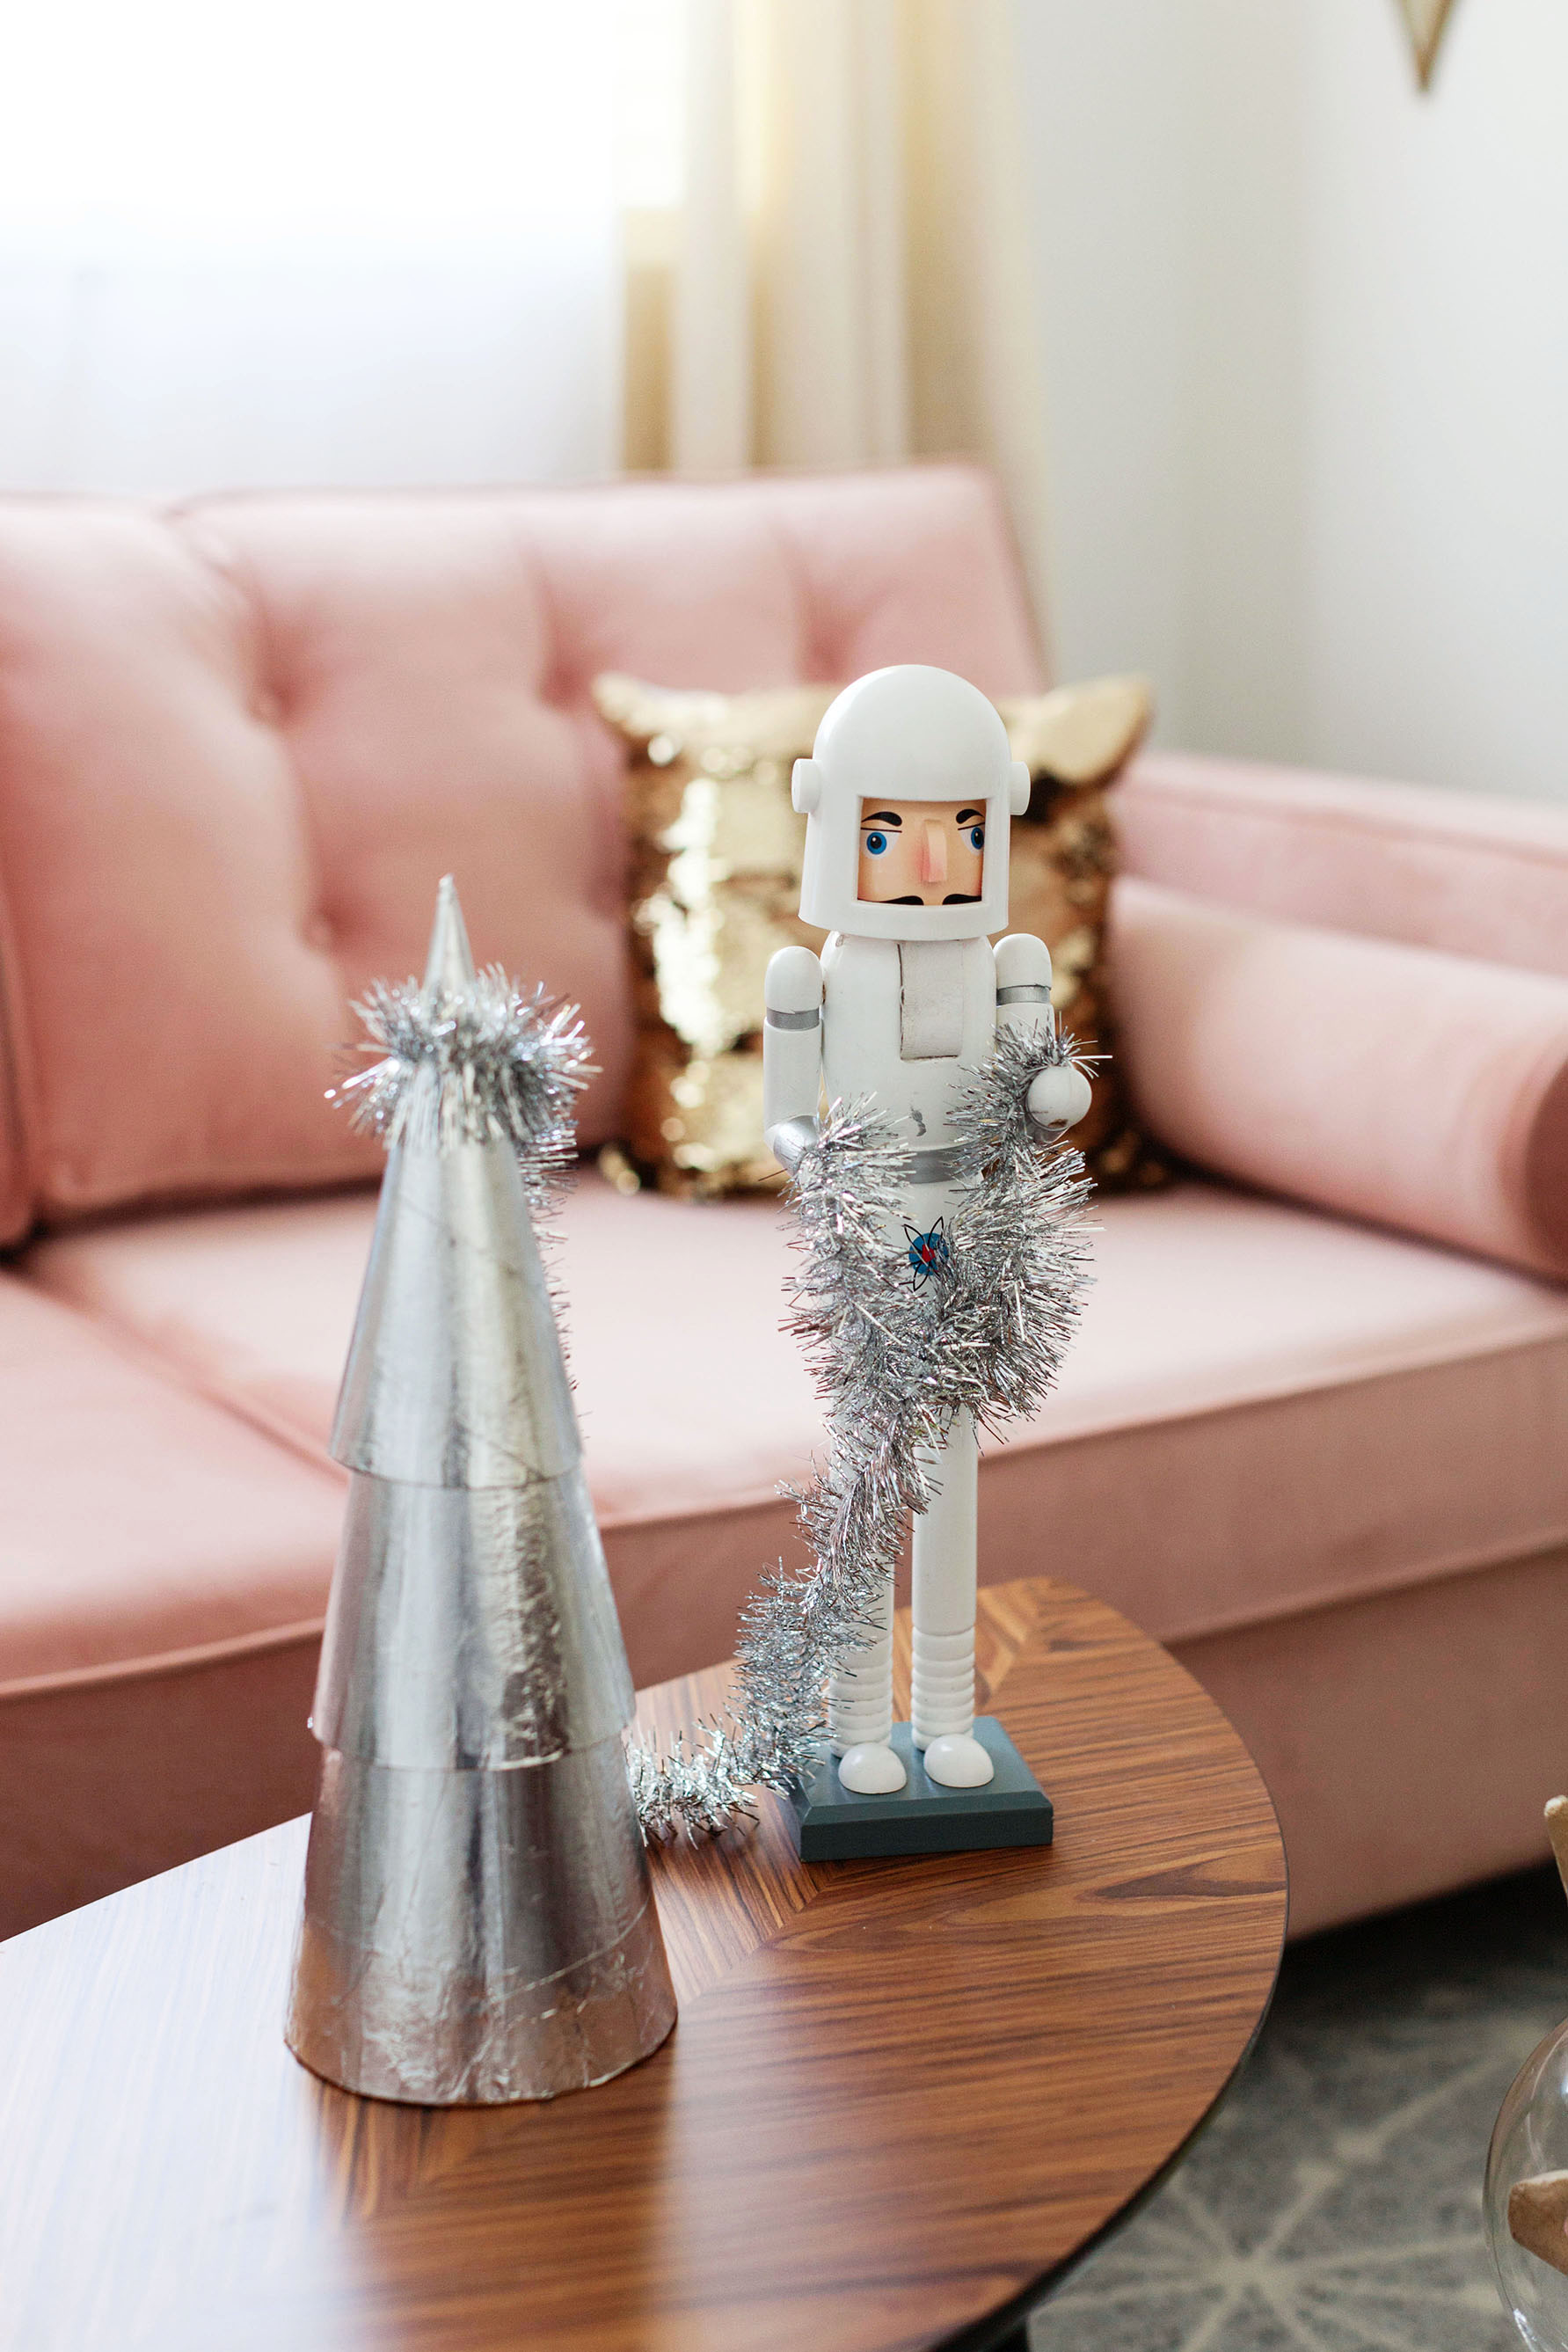 Space Age themed Christmas decorations